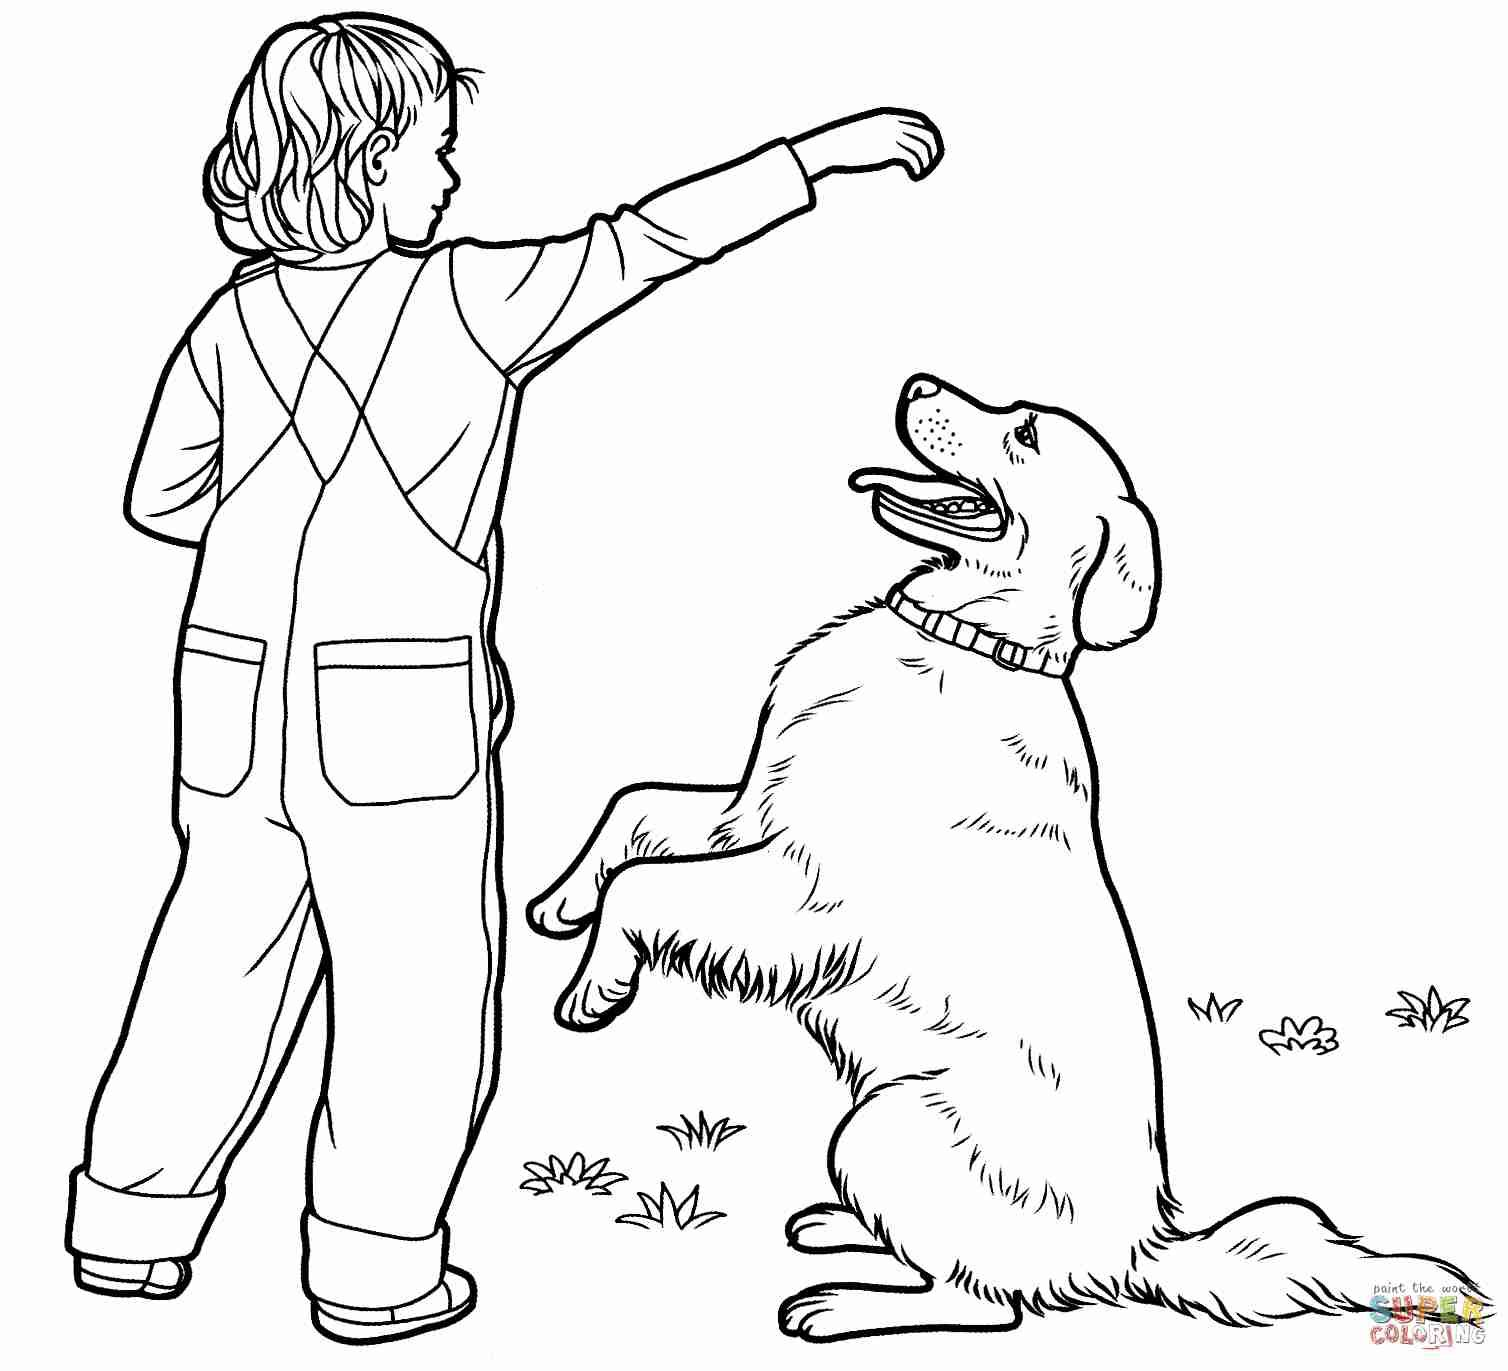 Golden Retriever Coloring Page Golden Retriever Coloring Pages Babbleedition Albanysinsanity Com Puppy Coloring Pages Dog Coloring Page Golden Retriever Colors [ 1371 x 1508 Pixel ]